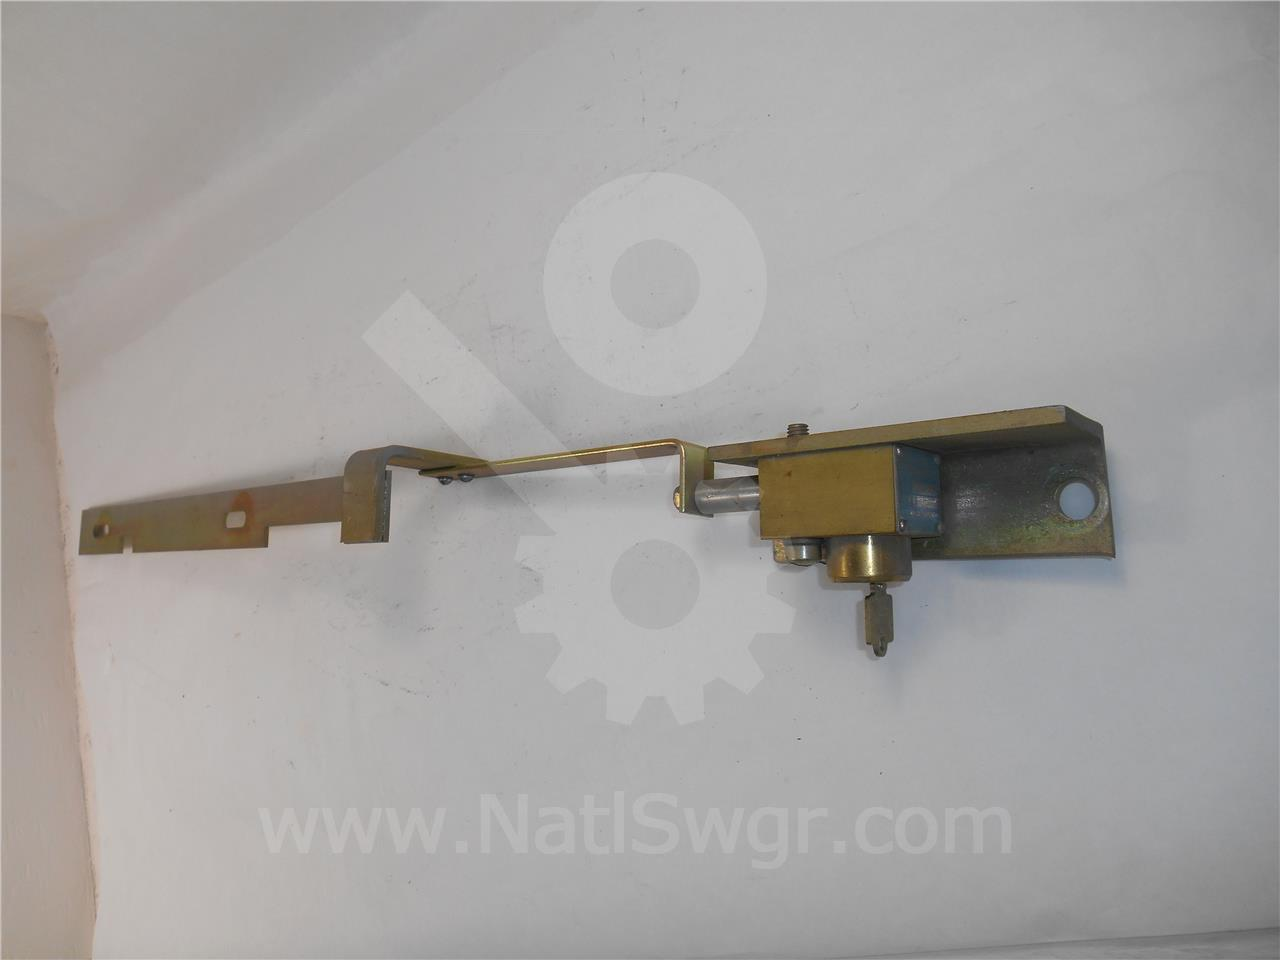 Siemens / Allis Chalmers KIRK KEY INTERLOCK ASSEMBLY FOR FC SWITCHGEAR